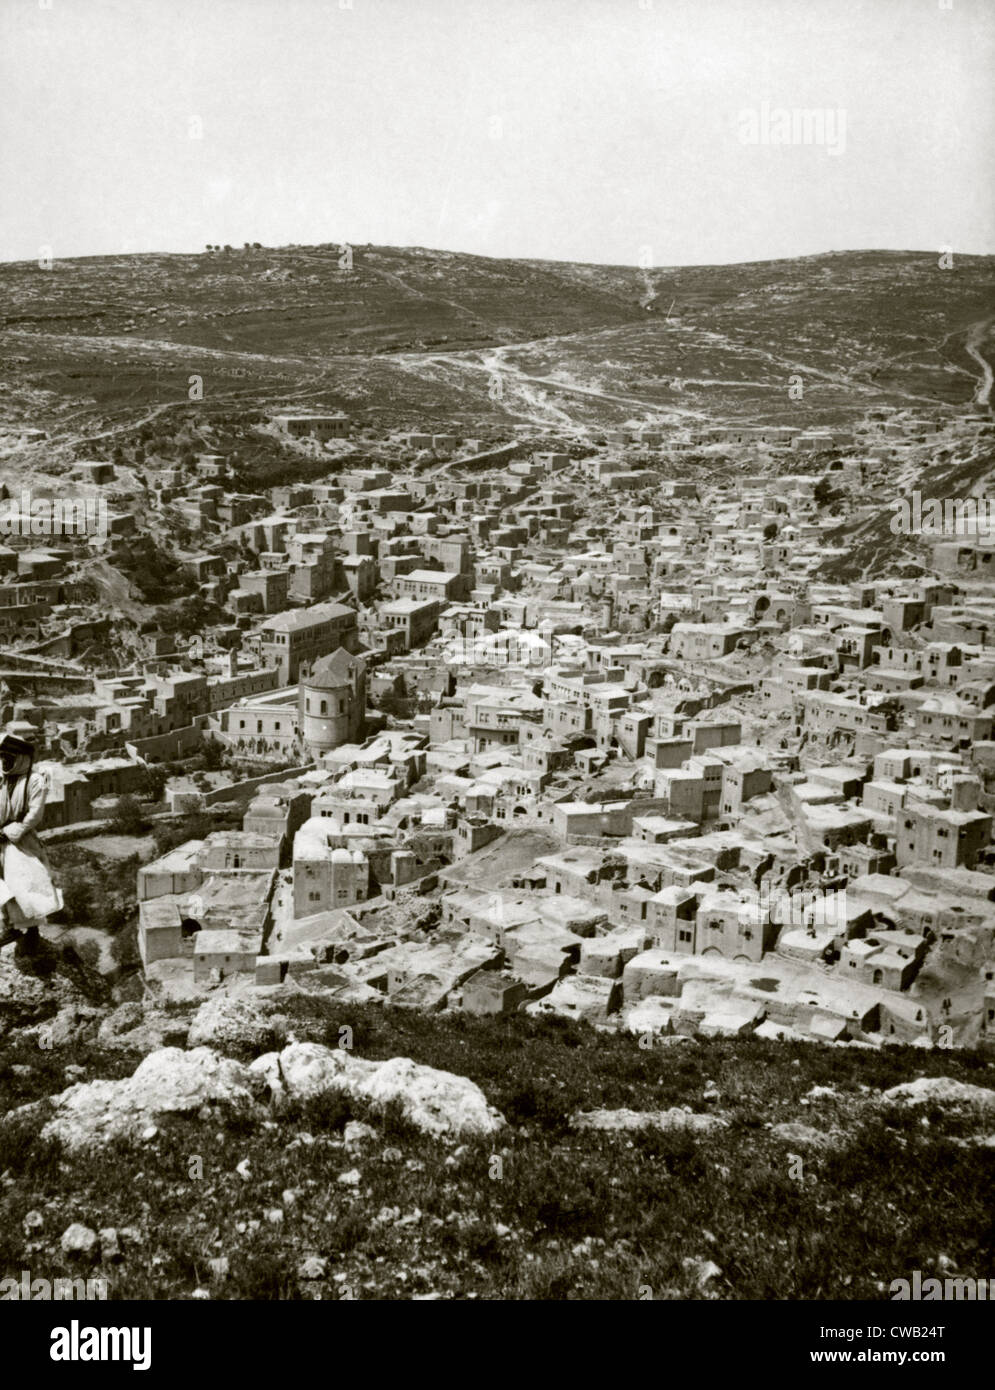 Town of Es Salt, ancient Jabesh-Gilead, Jordan, circa 1920. - Stock Image